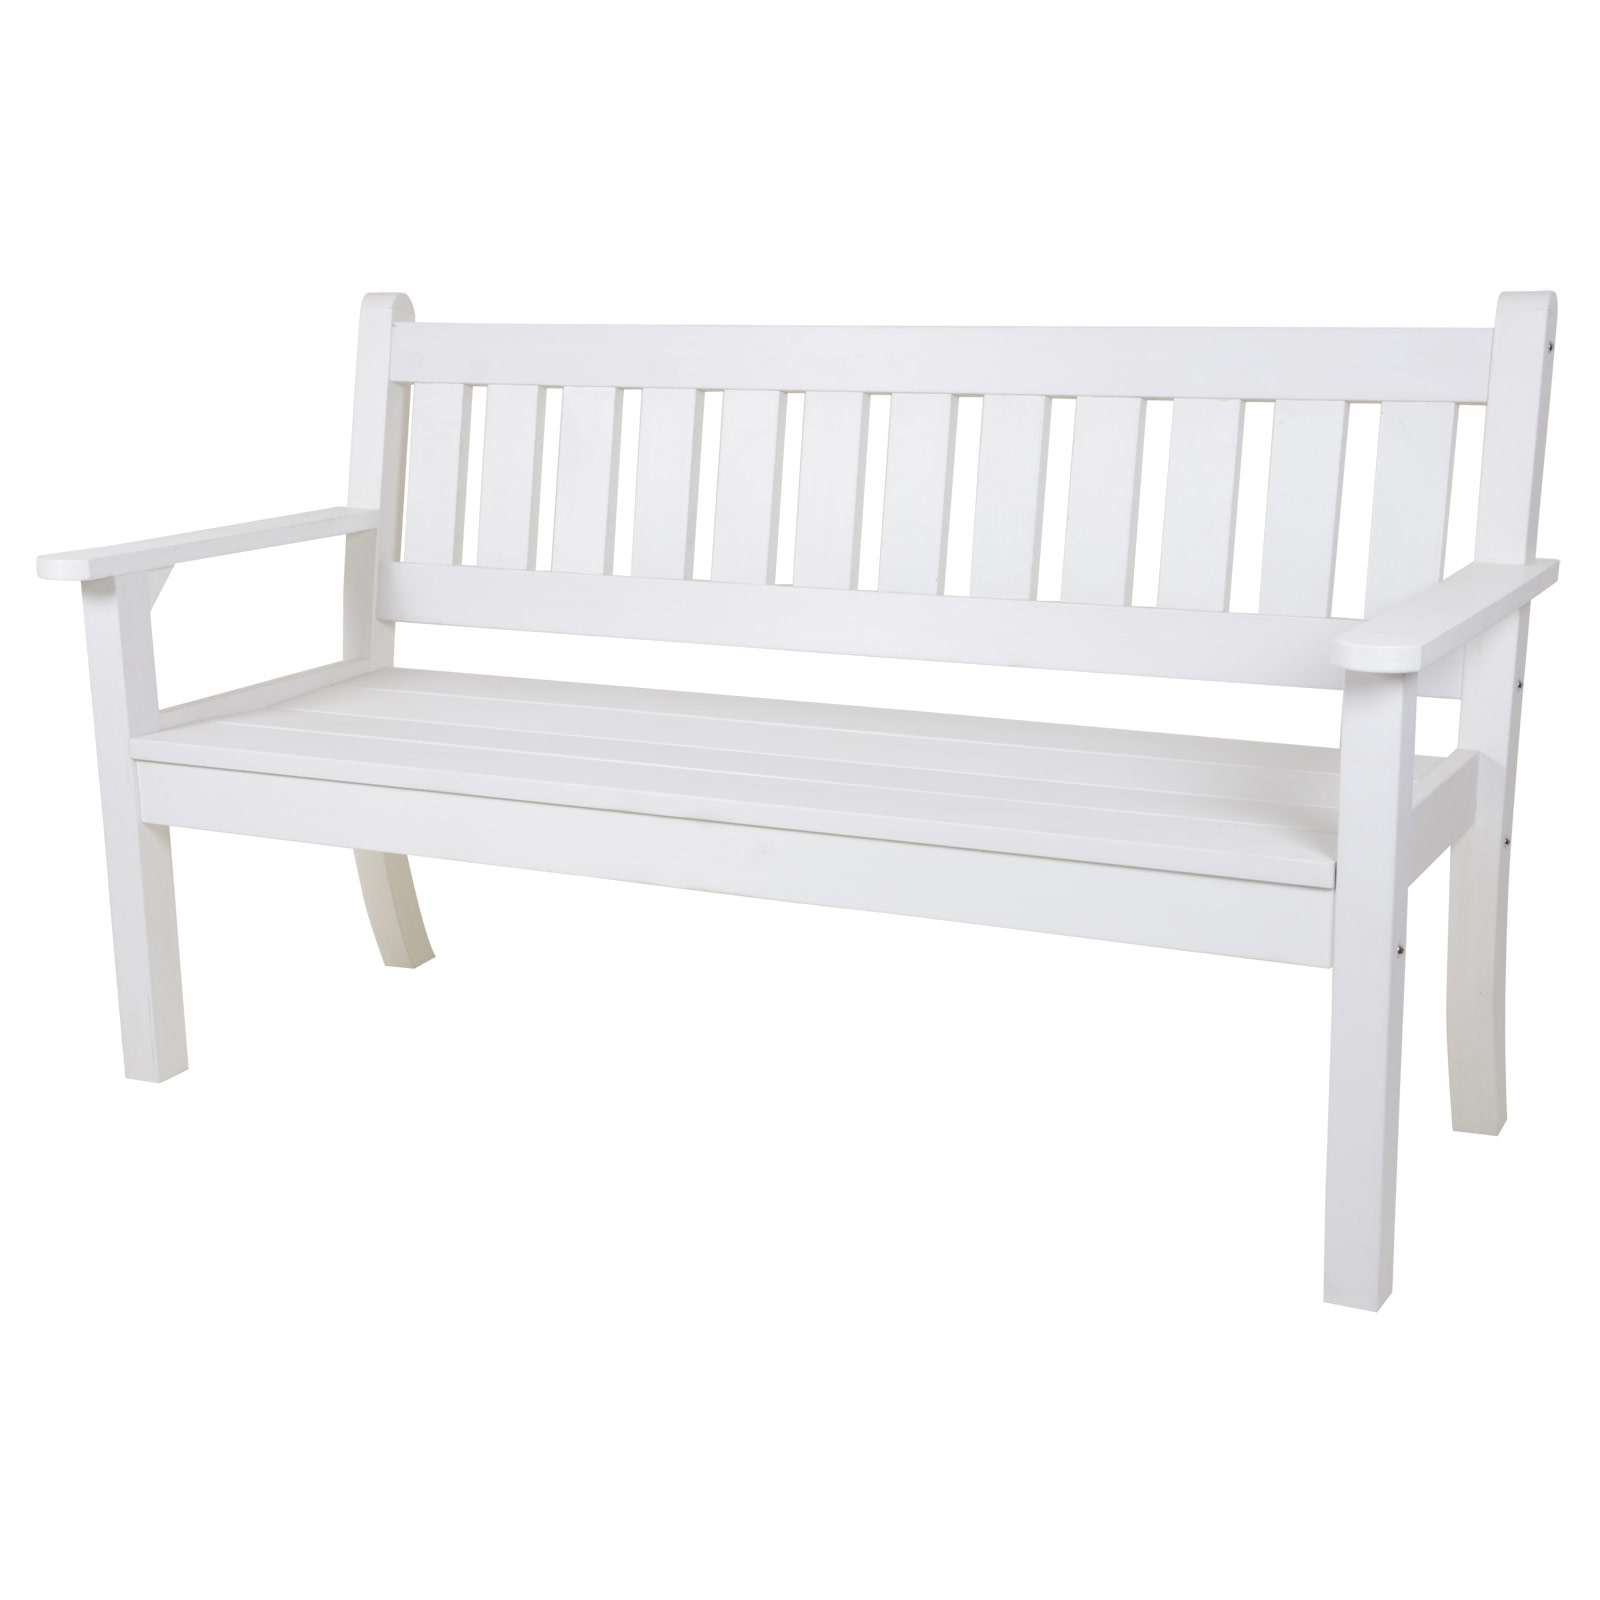 3 Seat White Bench Outdoor Garden Patio All Weather No Maintenance Wood Effect Ebay